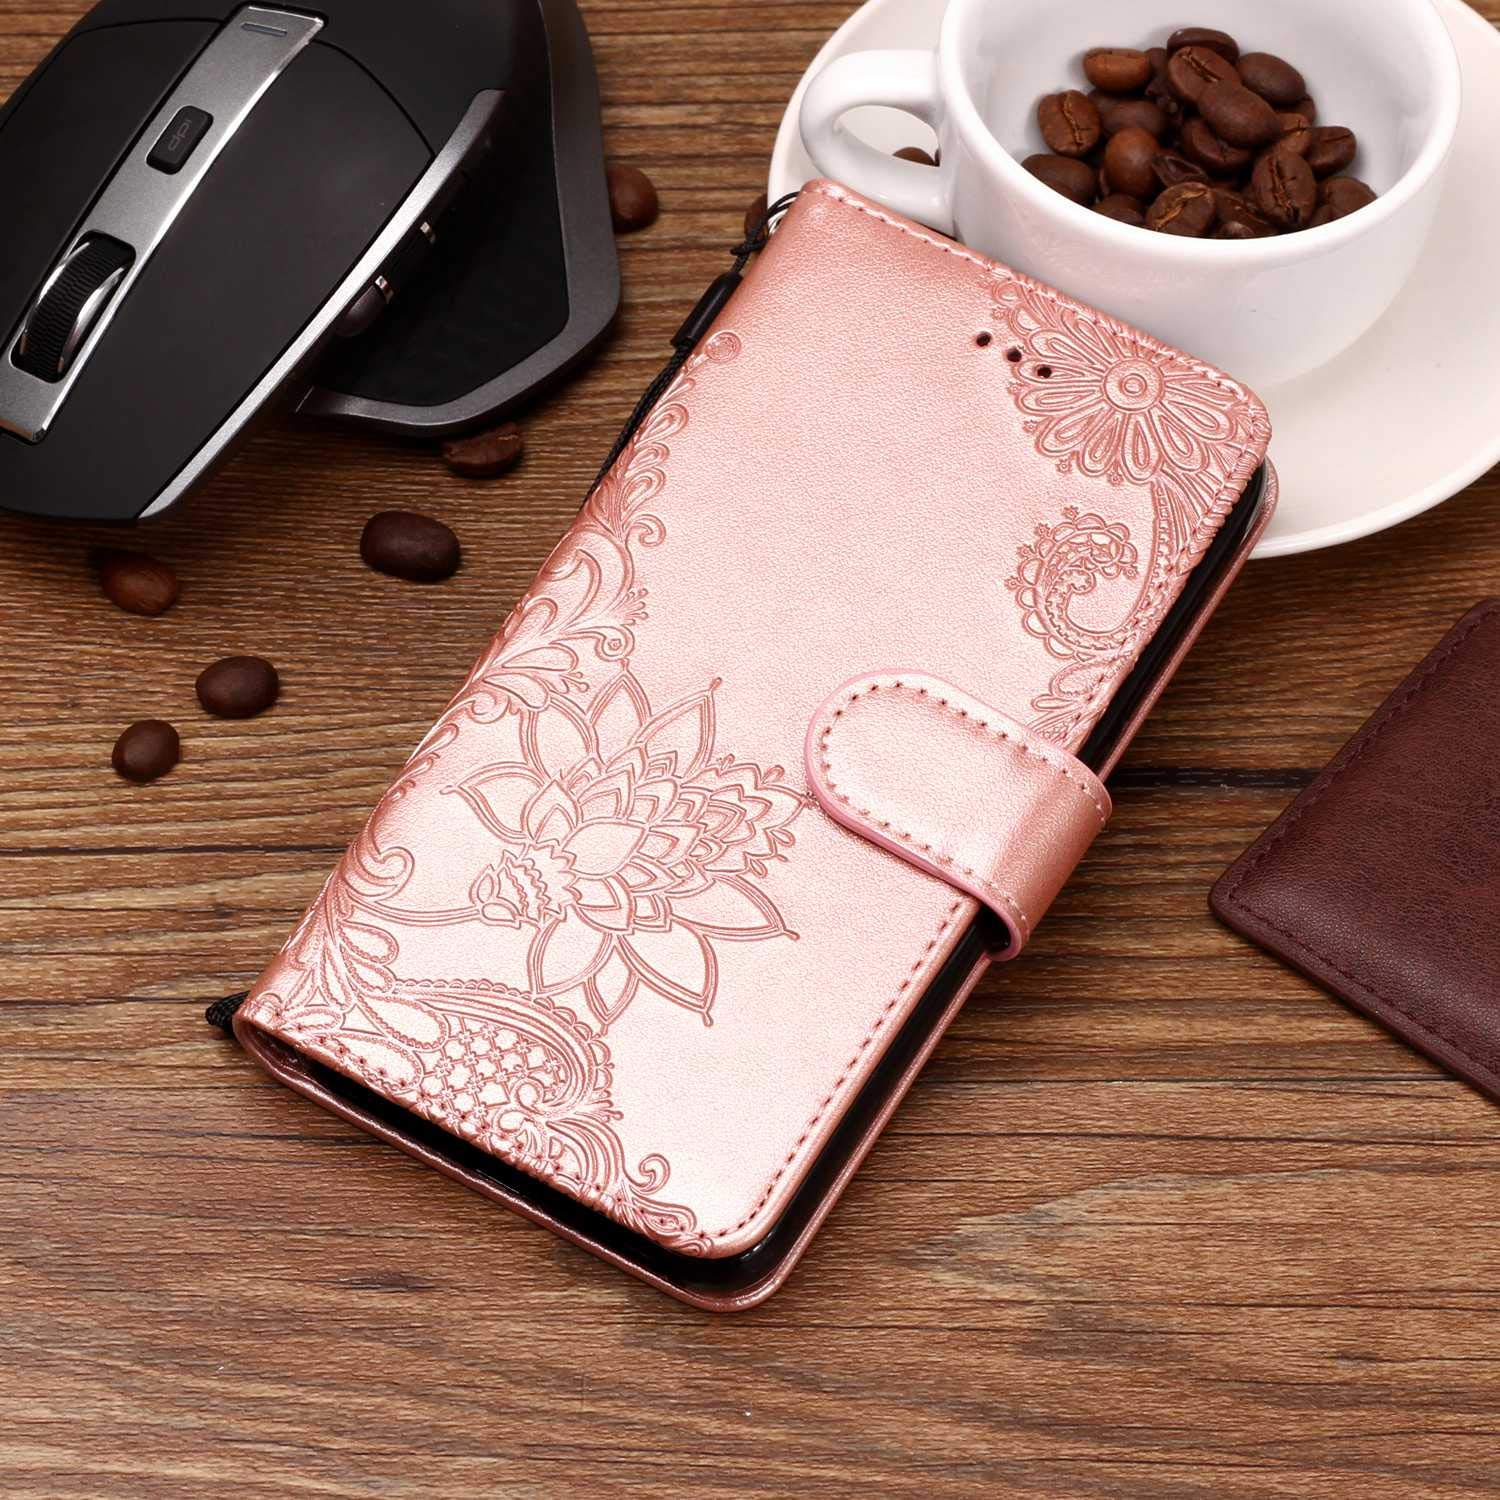 AIIYG DS,LG K30 Case,LG Premier Pro LTE/Phoenix Plus Wallet Case,Classic 3D Mandala Pattern [Kickstand Feature] Flip Folio Leather Wallet Case with ID and Credit Card Pockets For LG K10 2018/Rose Gold by AIIYG DS (Image #5)